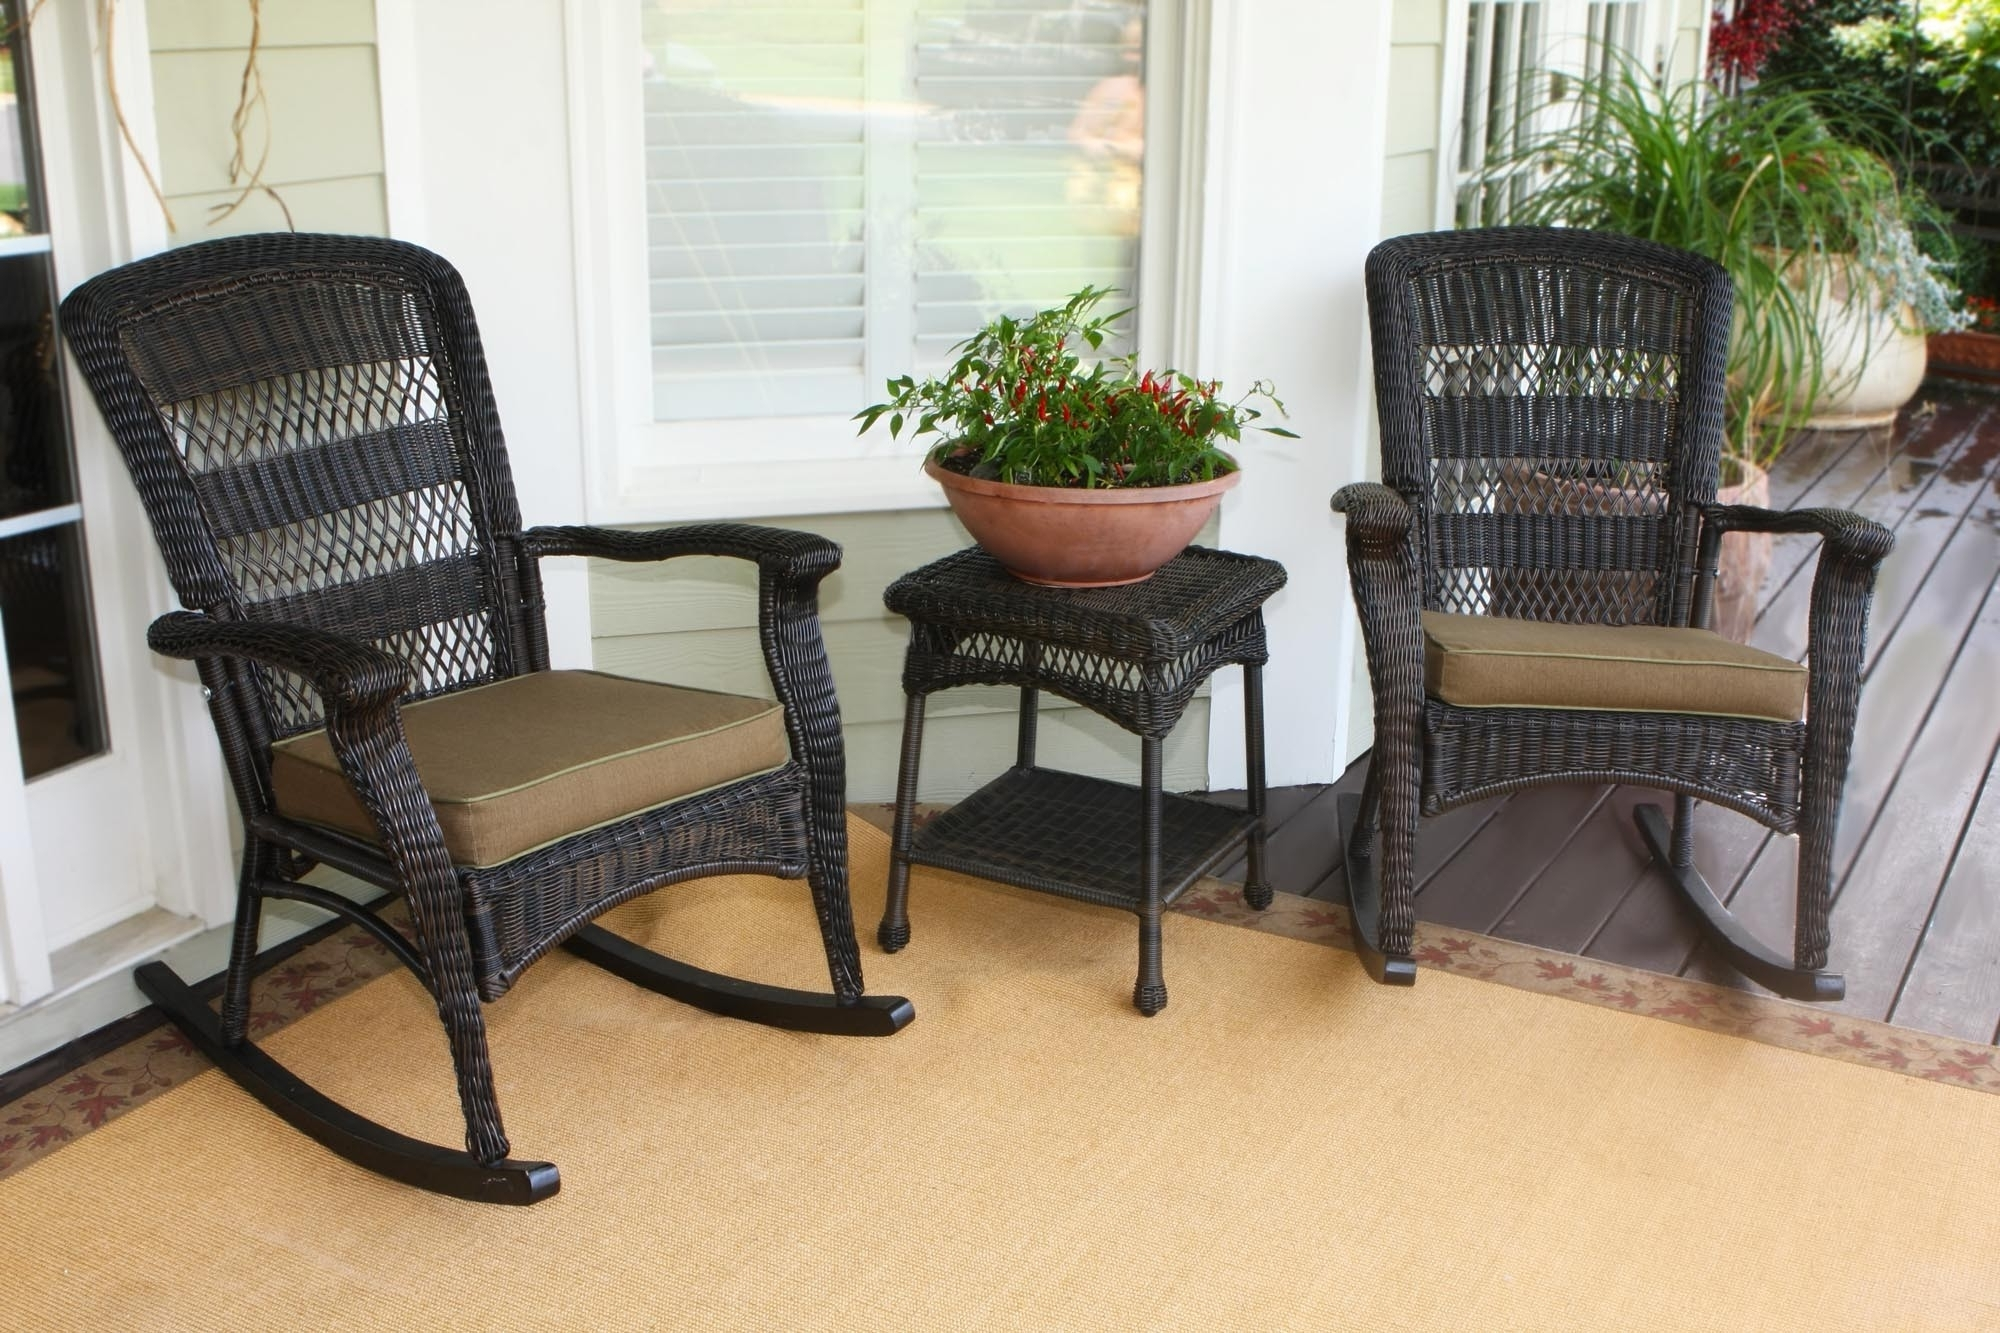 Livingroom : All Weather Patio Rocking Chairs Chair Sets Wicker Best Inside Famous Brown Wicker Patio Rocking Chairs (View 15 of 20)